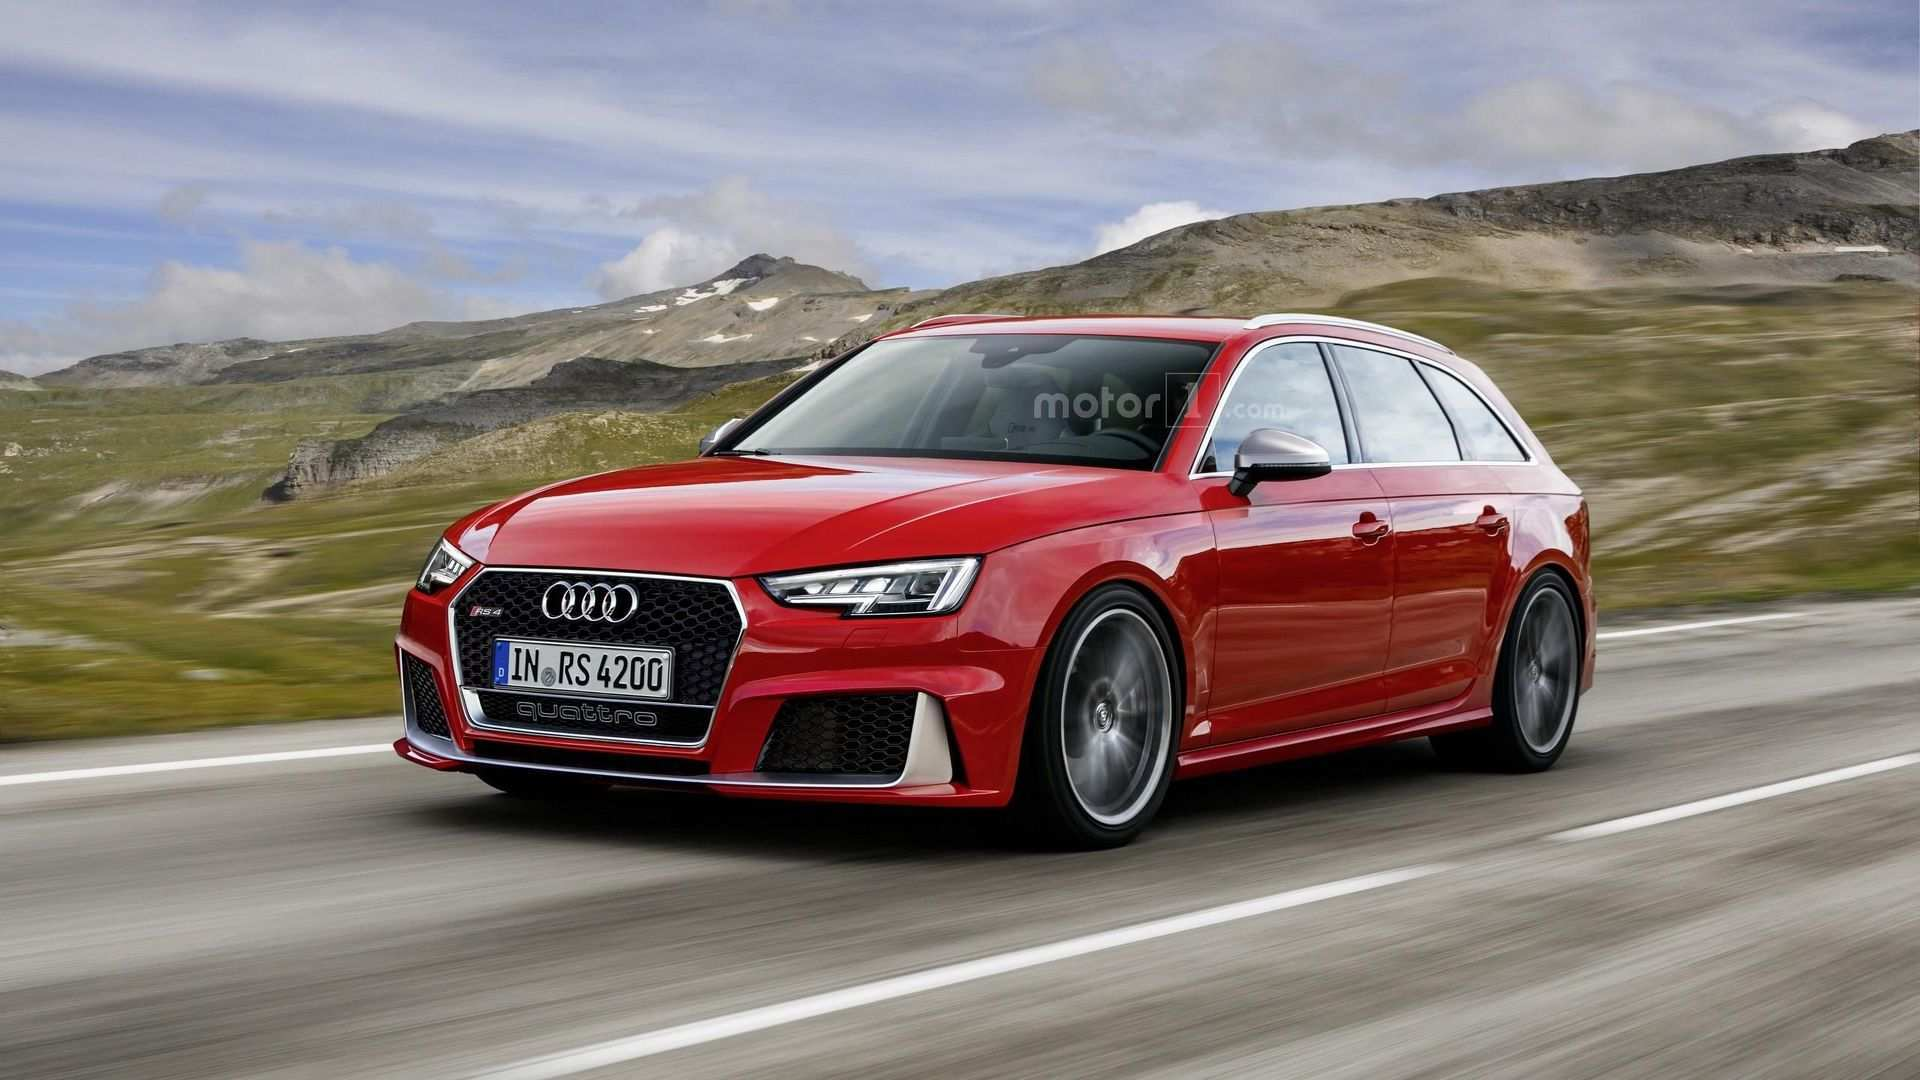 99 Concept of 2019 Audi Rs4 Usa Model with 2019 Audi Rs4 Usa